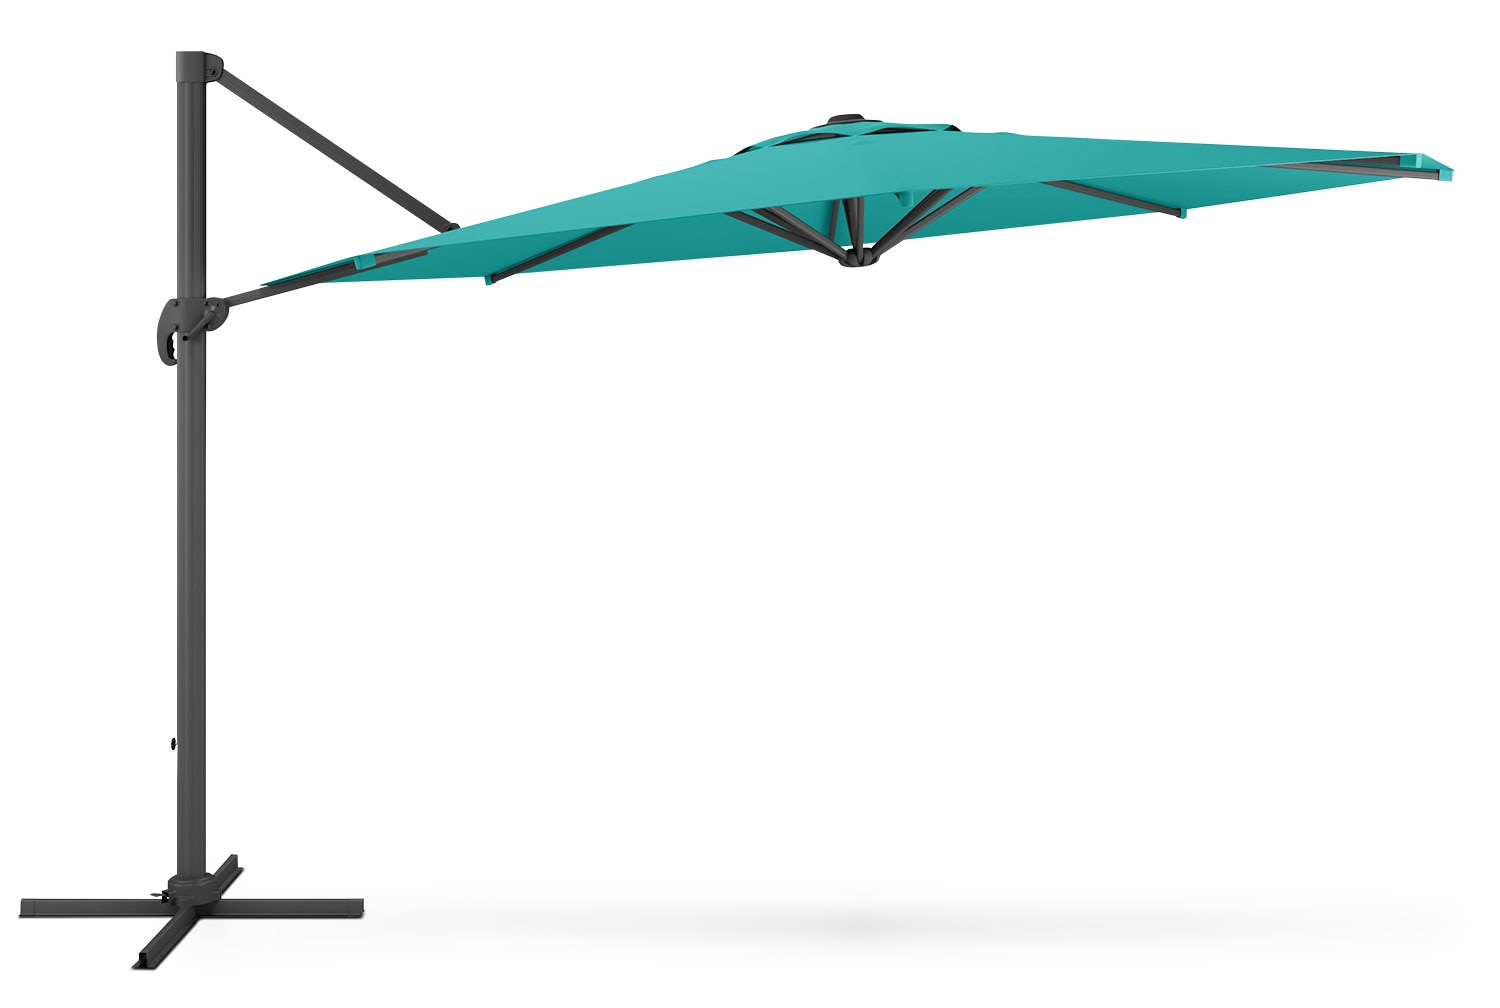 Outdoor Furniture - Offset Patio Umbrella – Turquoise Blue